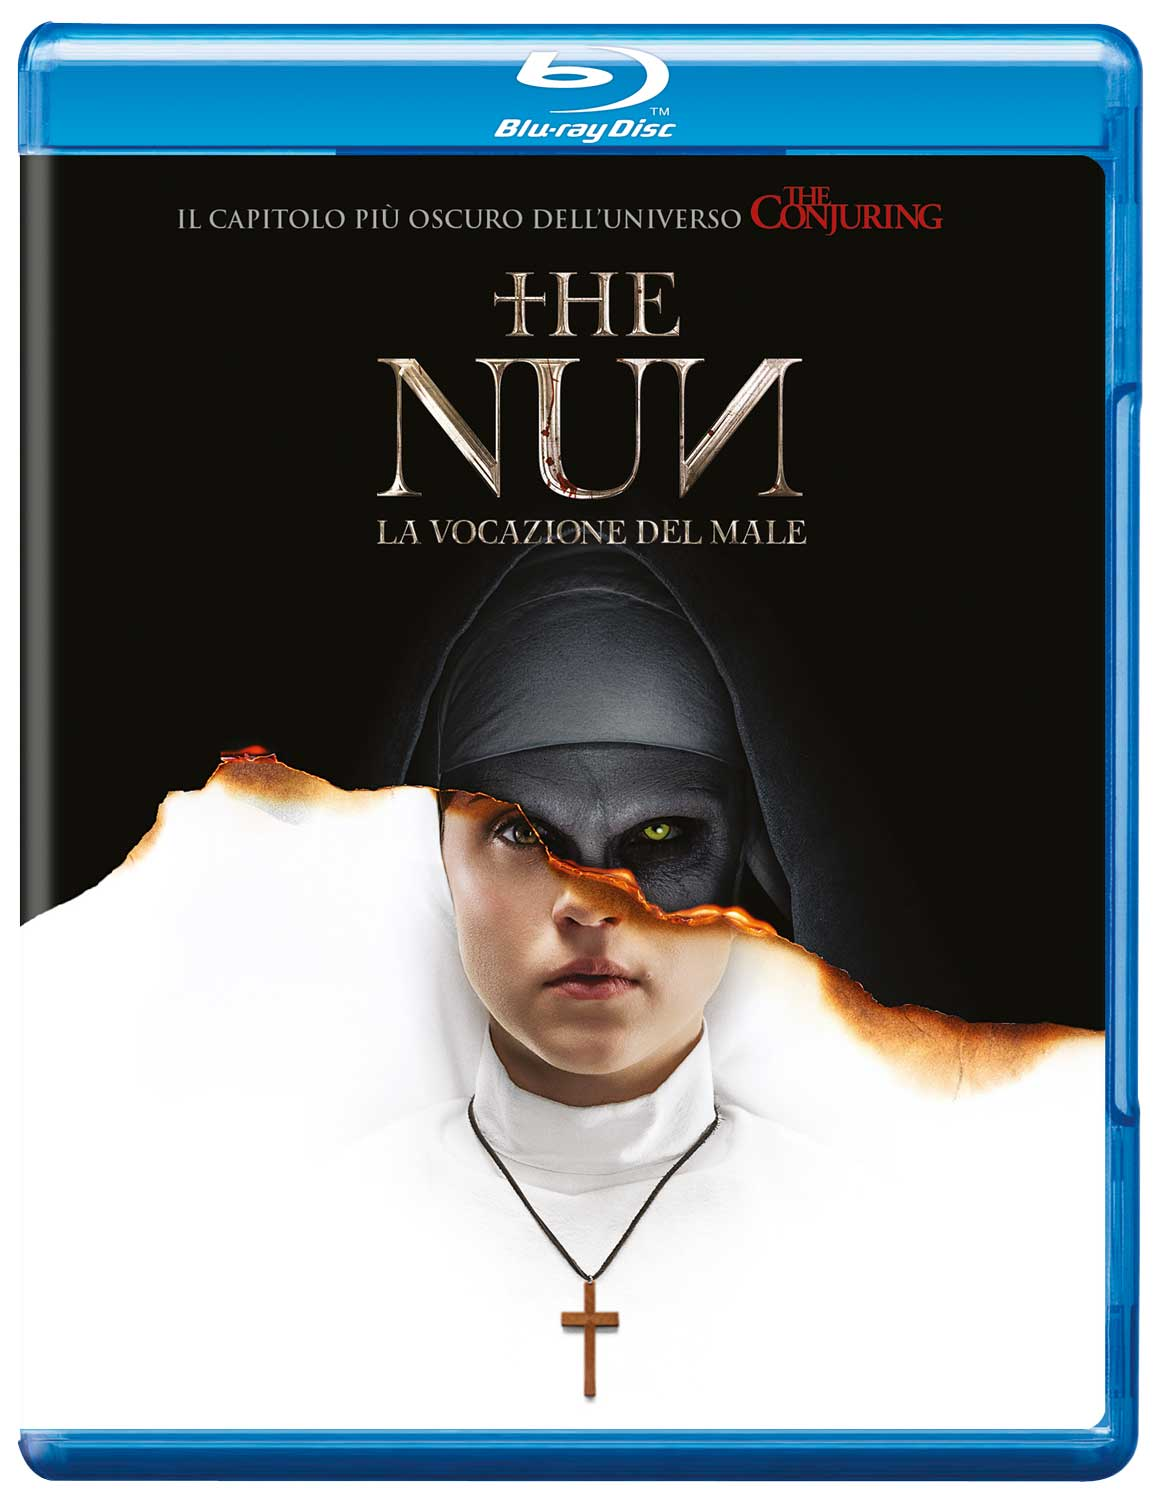 Nun (The) - La vocazione del male (2018)